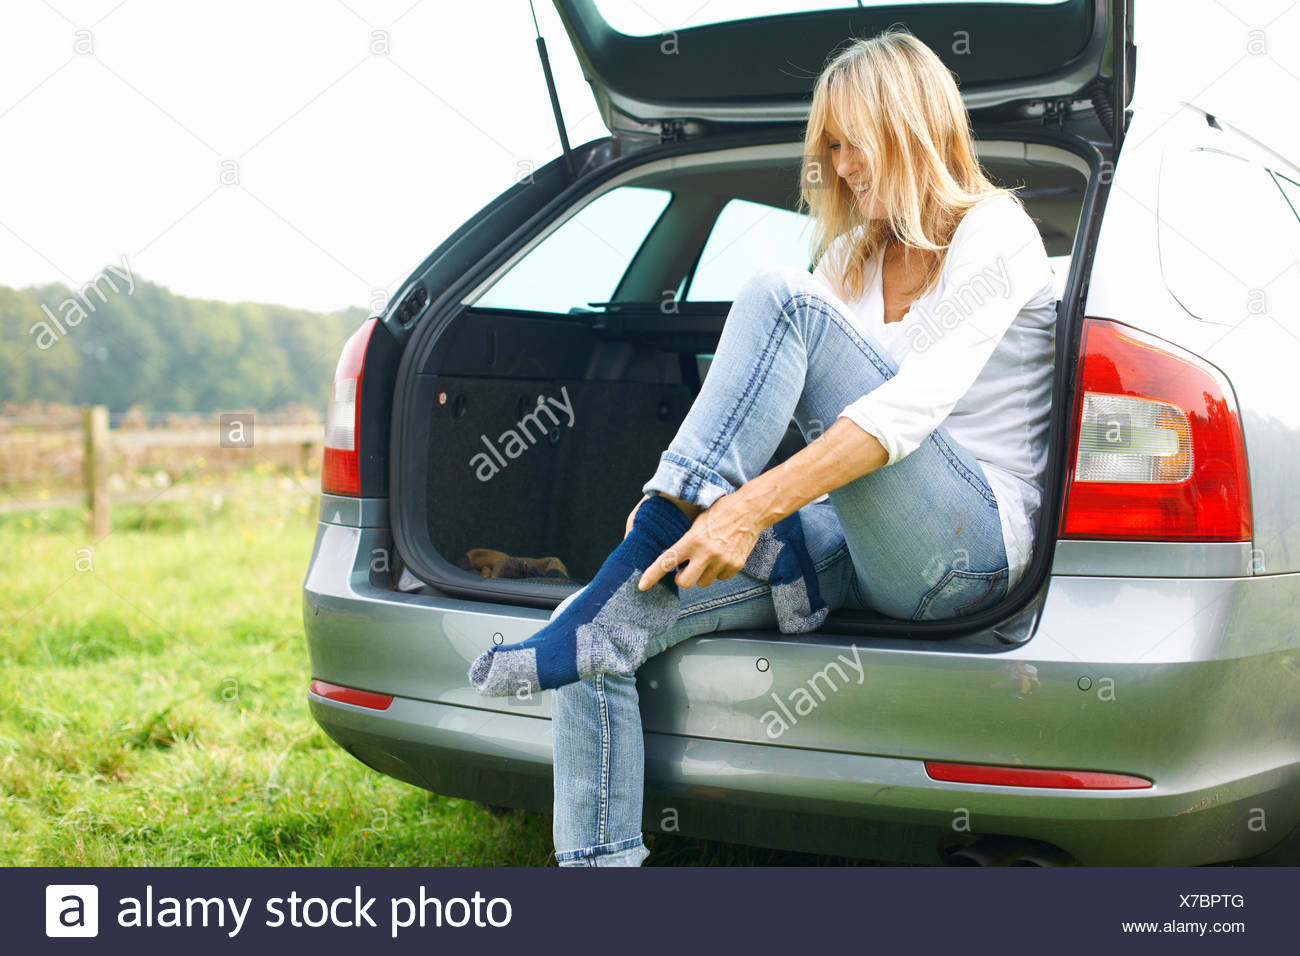 Woman sitting at rear of car putting on socks - Stock Image